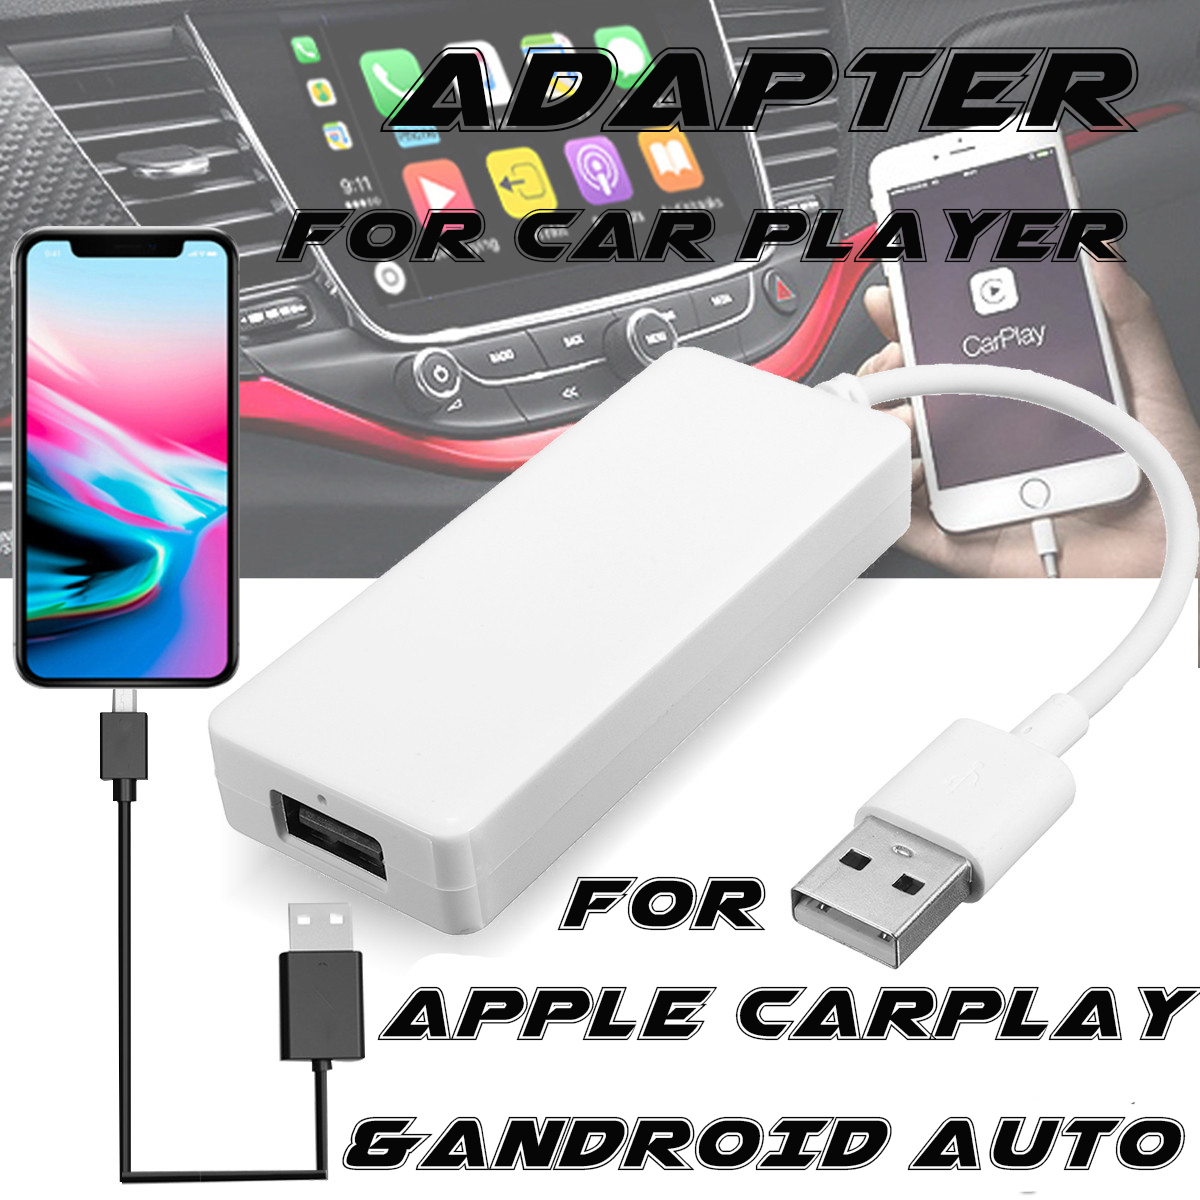 USB Dongle Adapter for iPhone Android Carplay Navigation Headunit Link MP5  Player